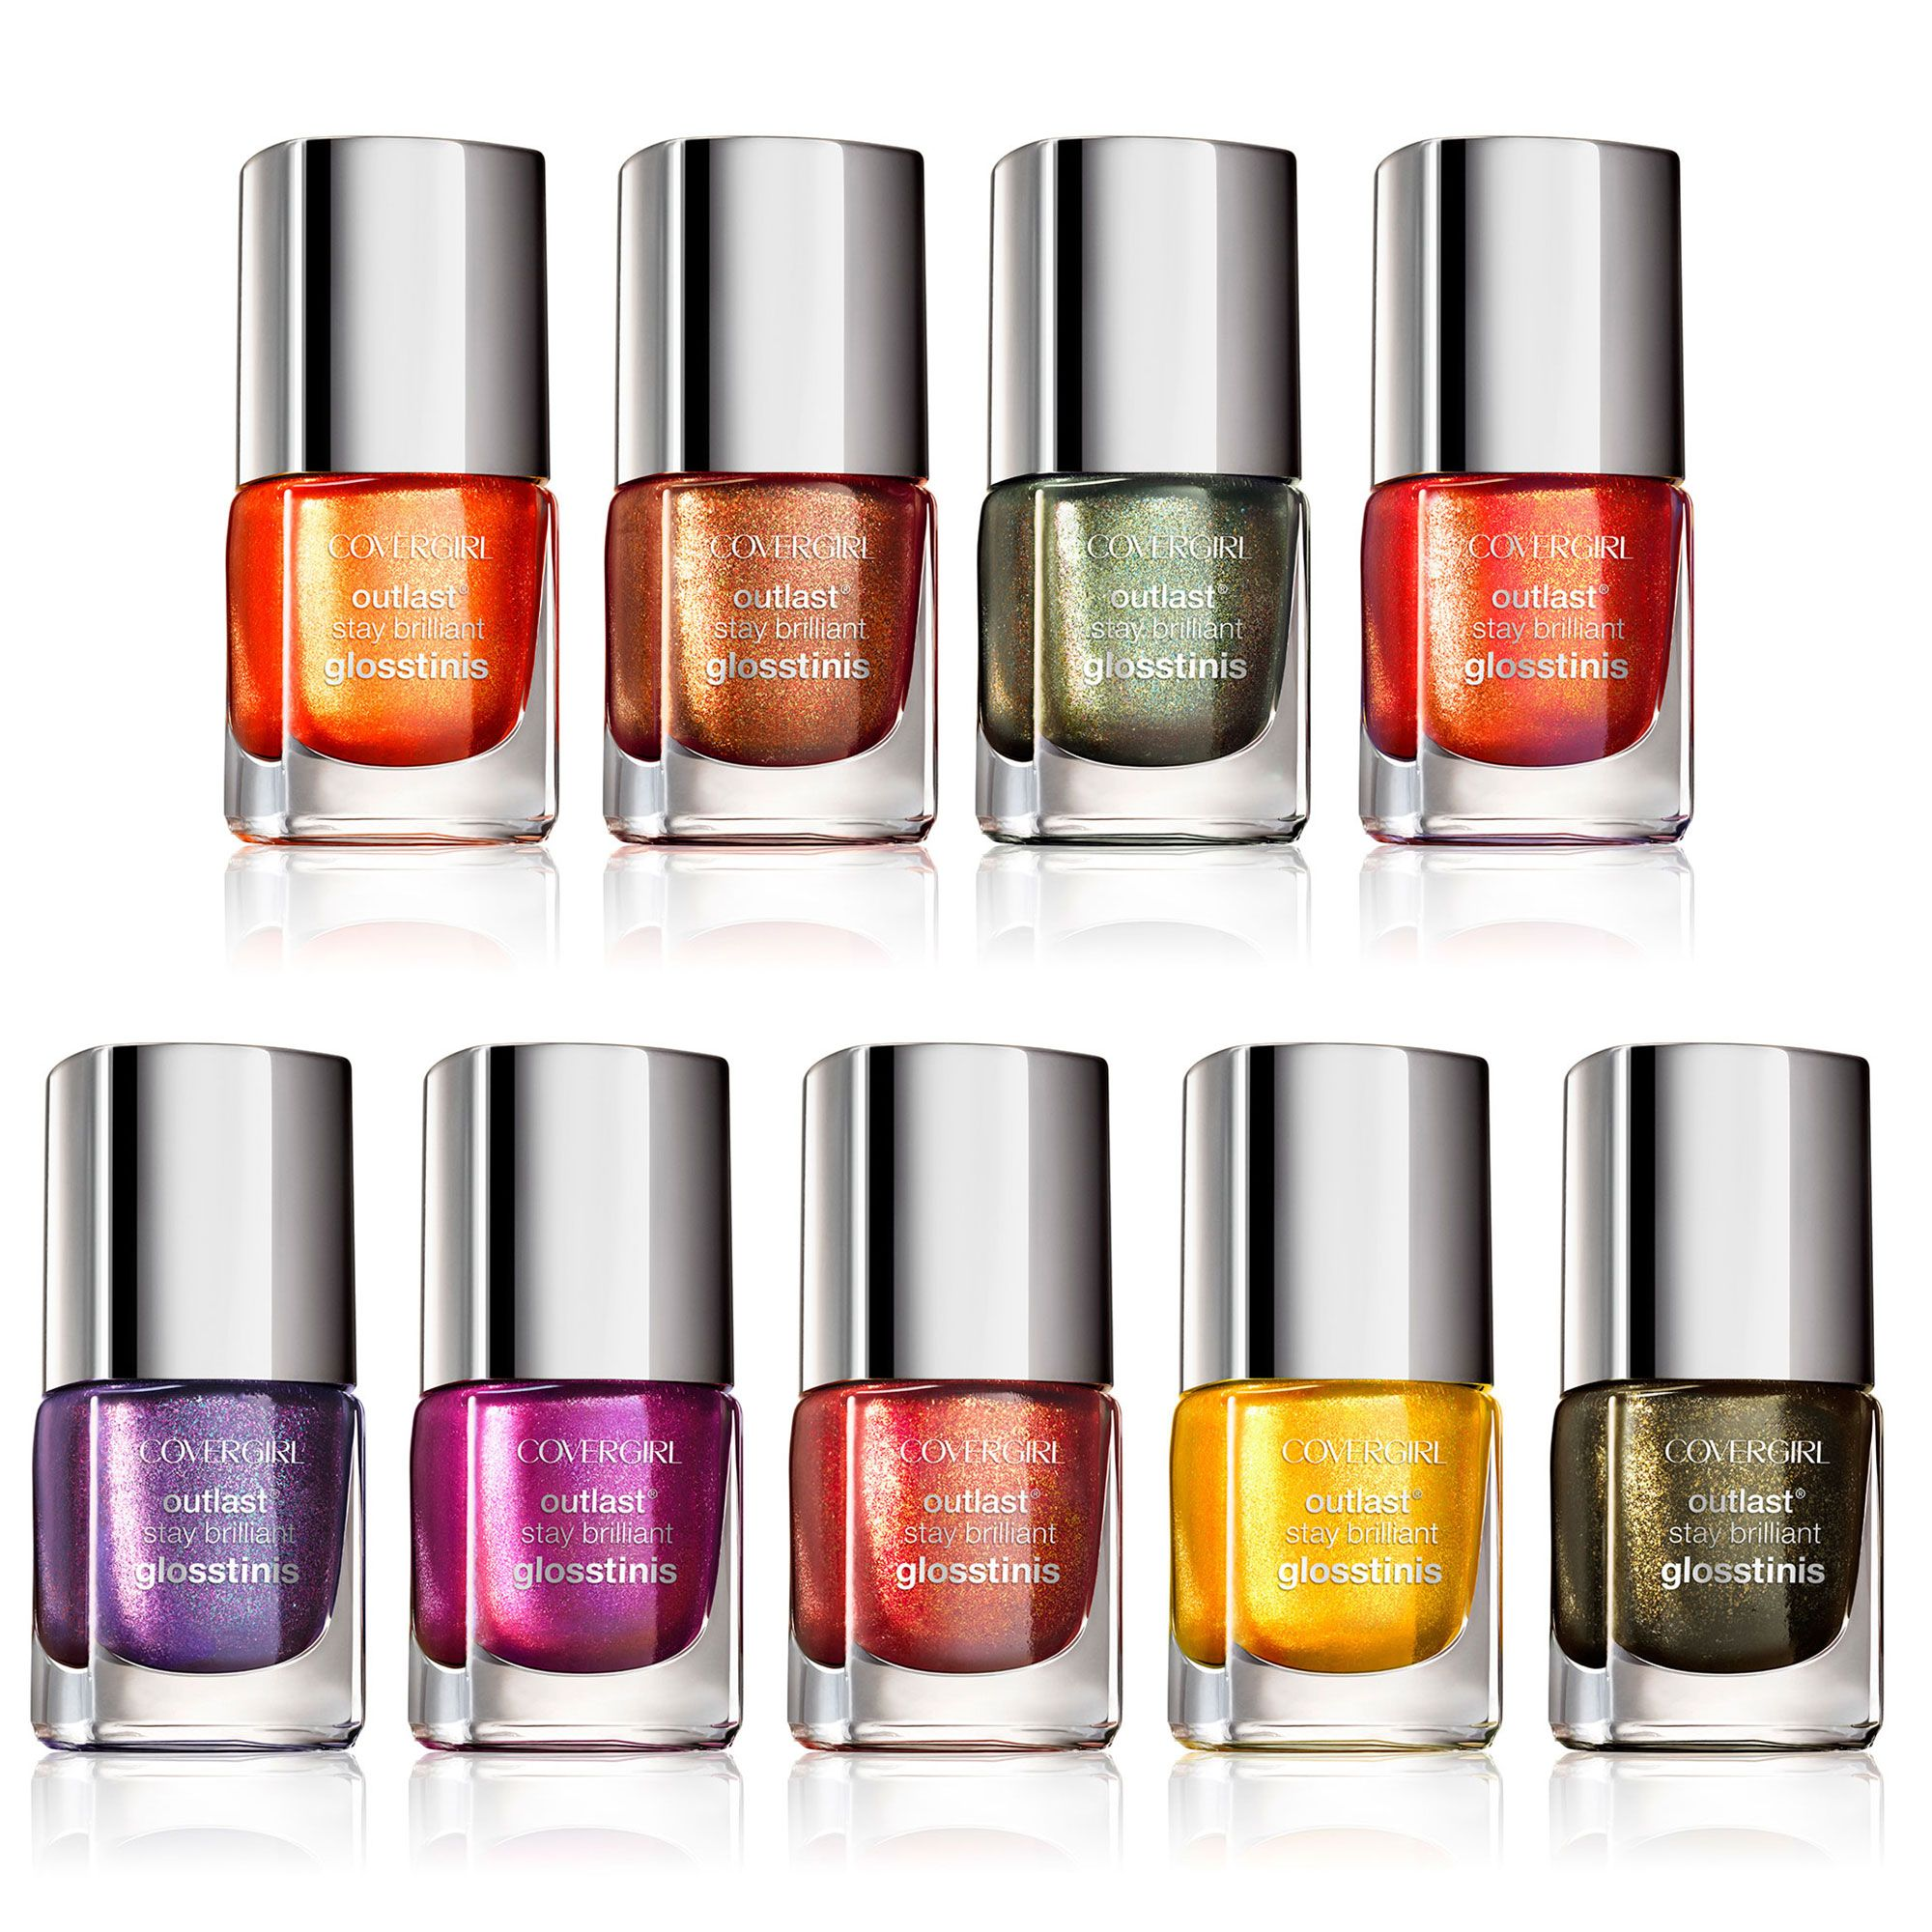 Hunger Games Nail Polish Colors from CoverGirl - Catching Fire Nail ...